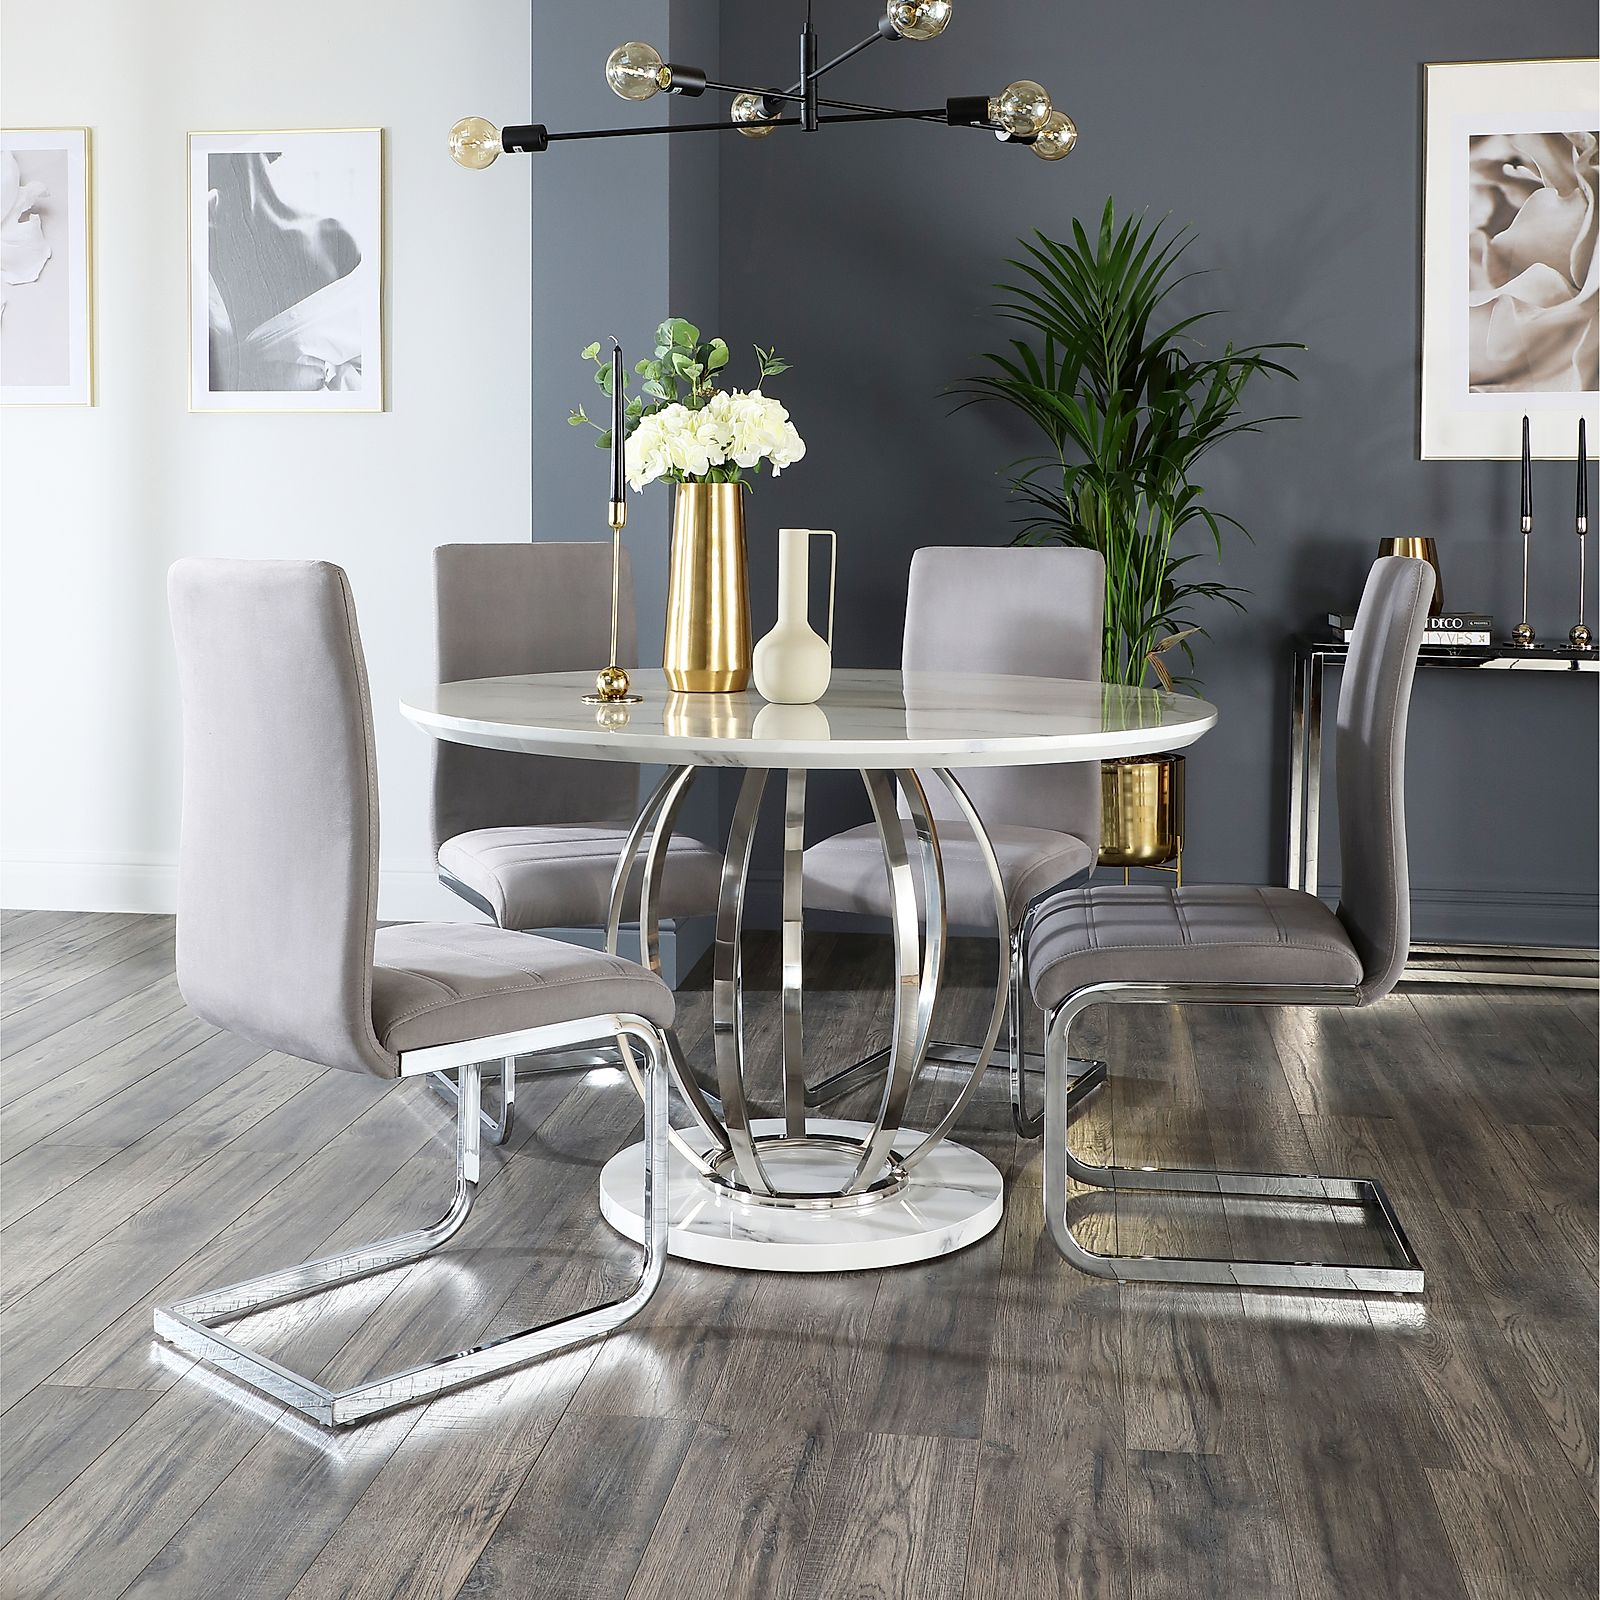 Savoy Round White Marble and Chrome Dining Table with 4 ...